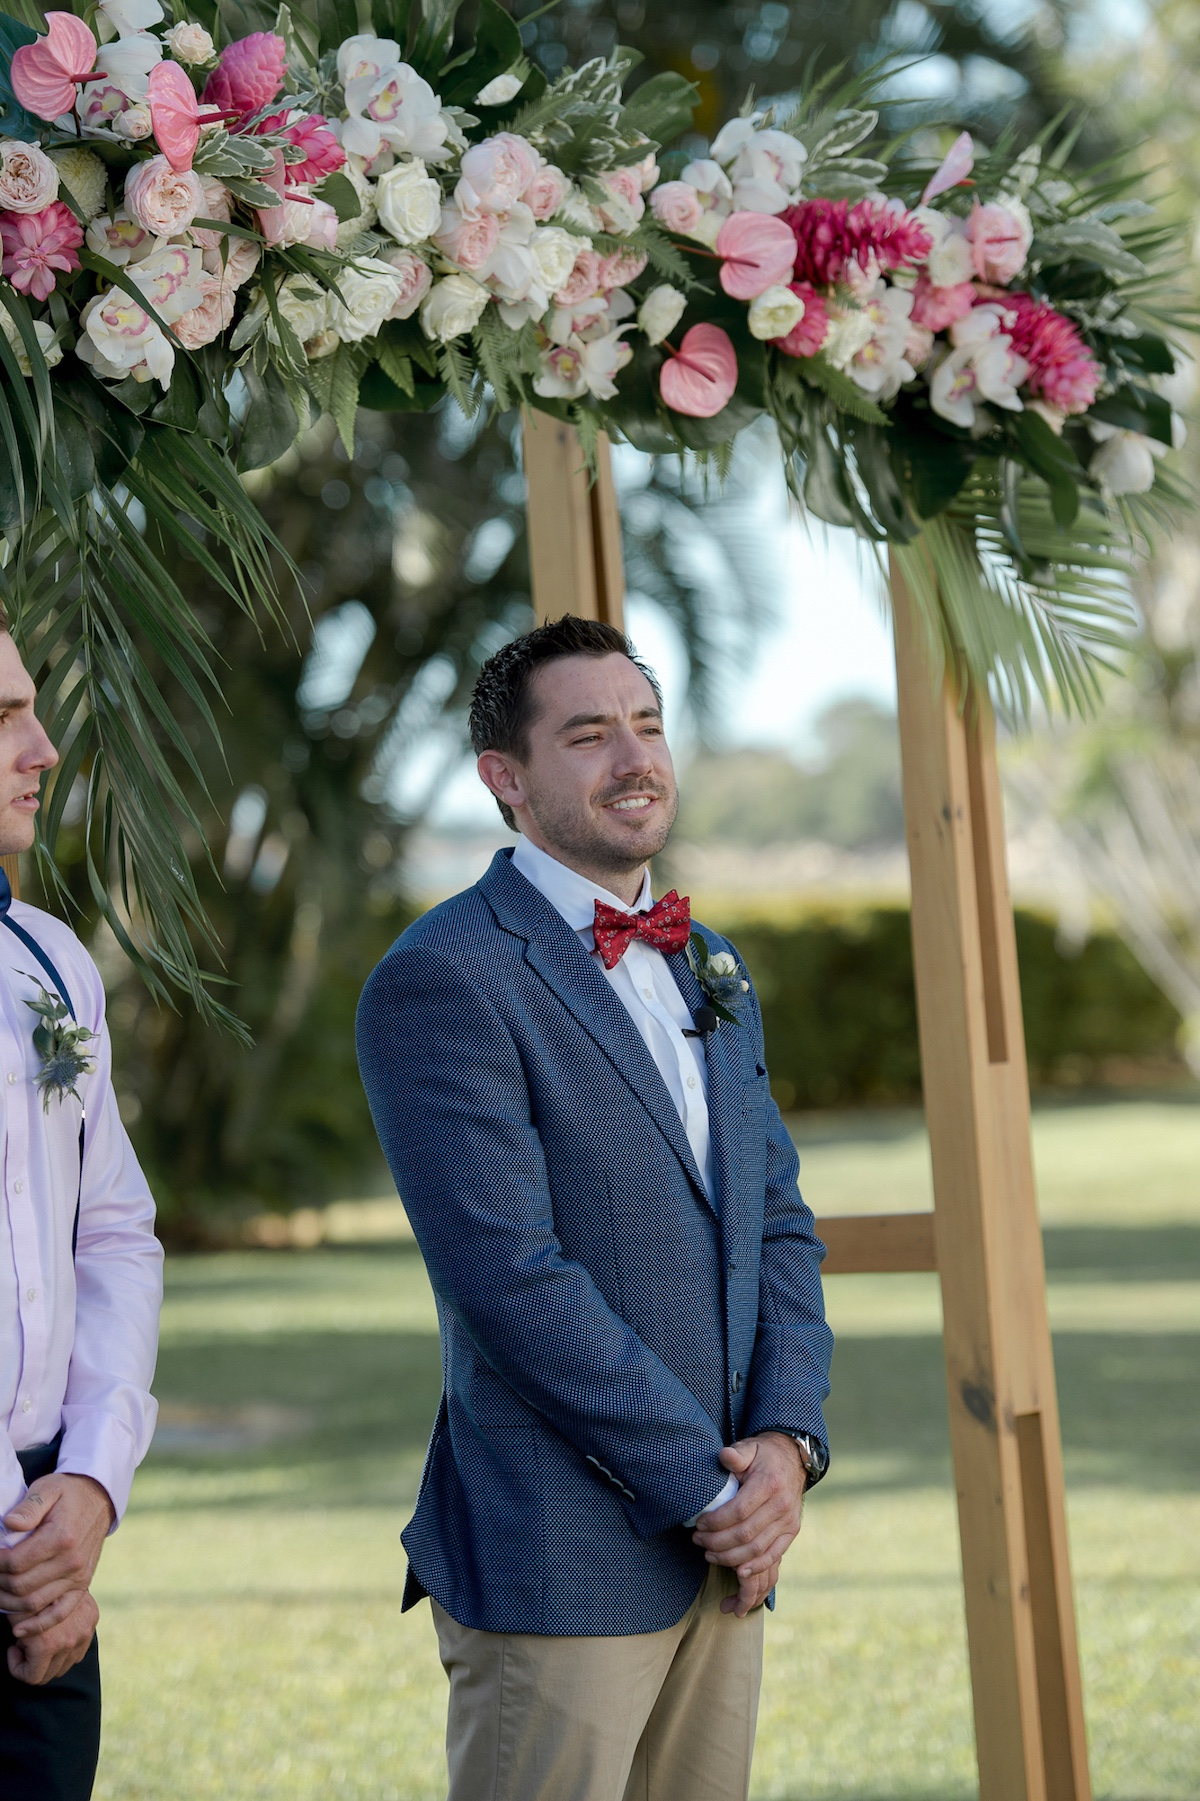 Wedding ceremony about to take place under tropical pink floral arbour. Groom awaits bride.